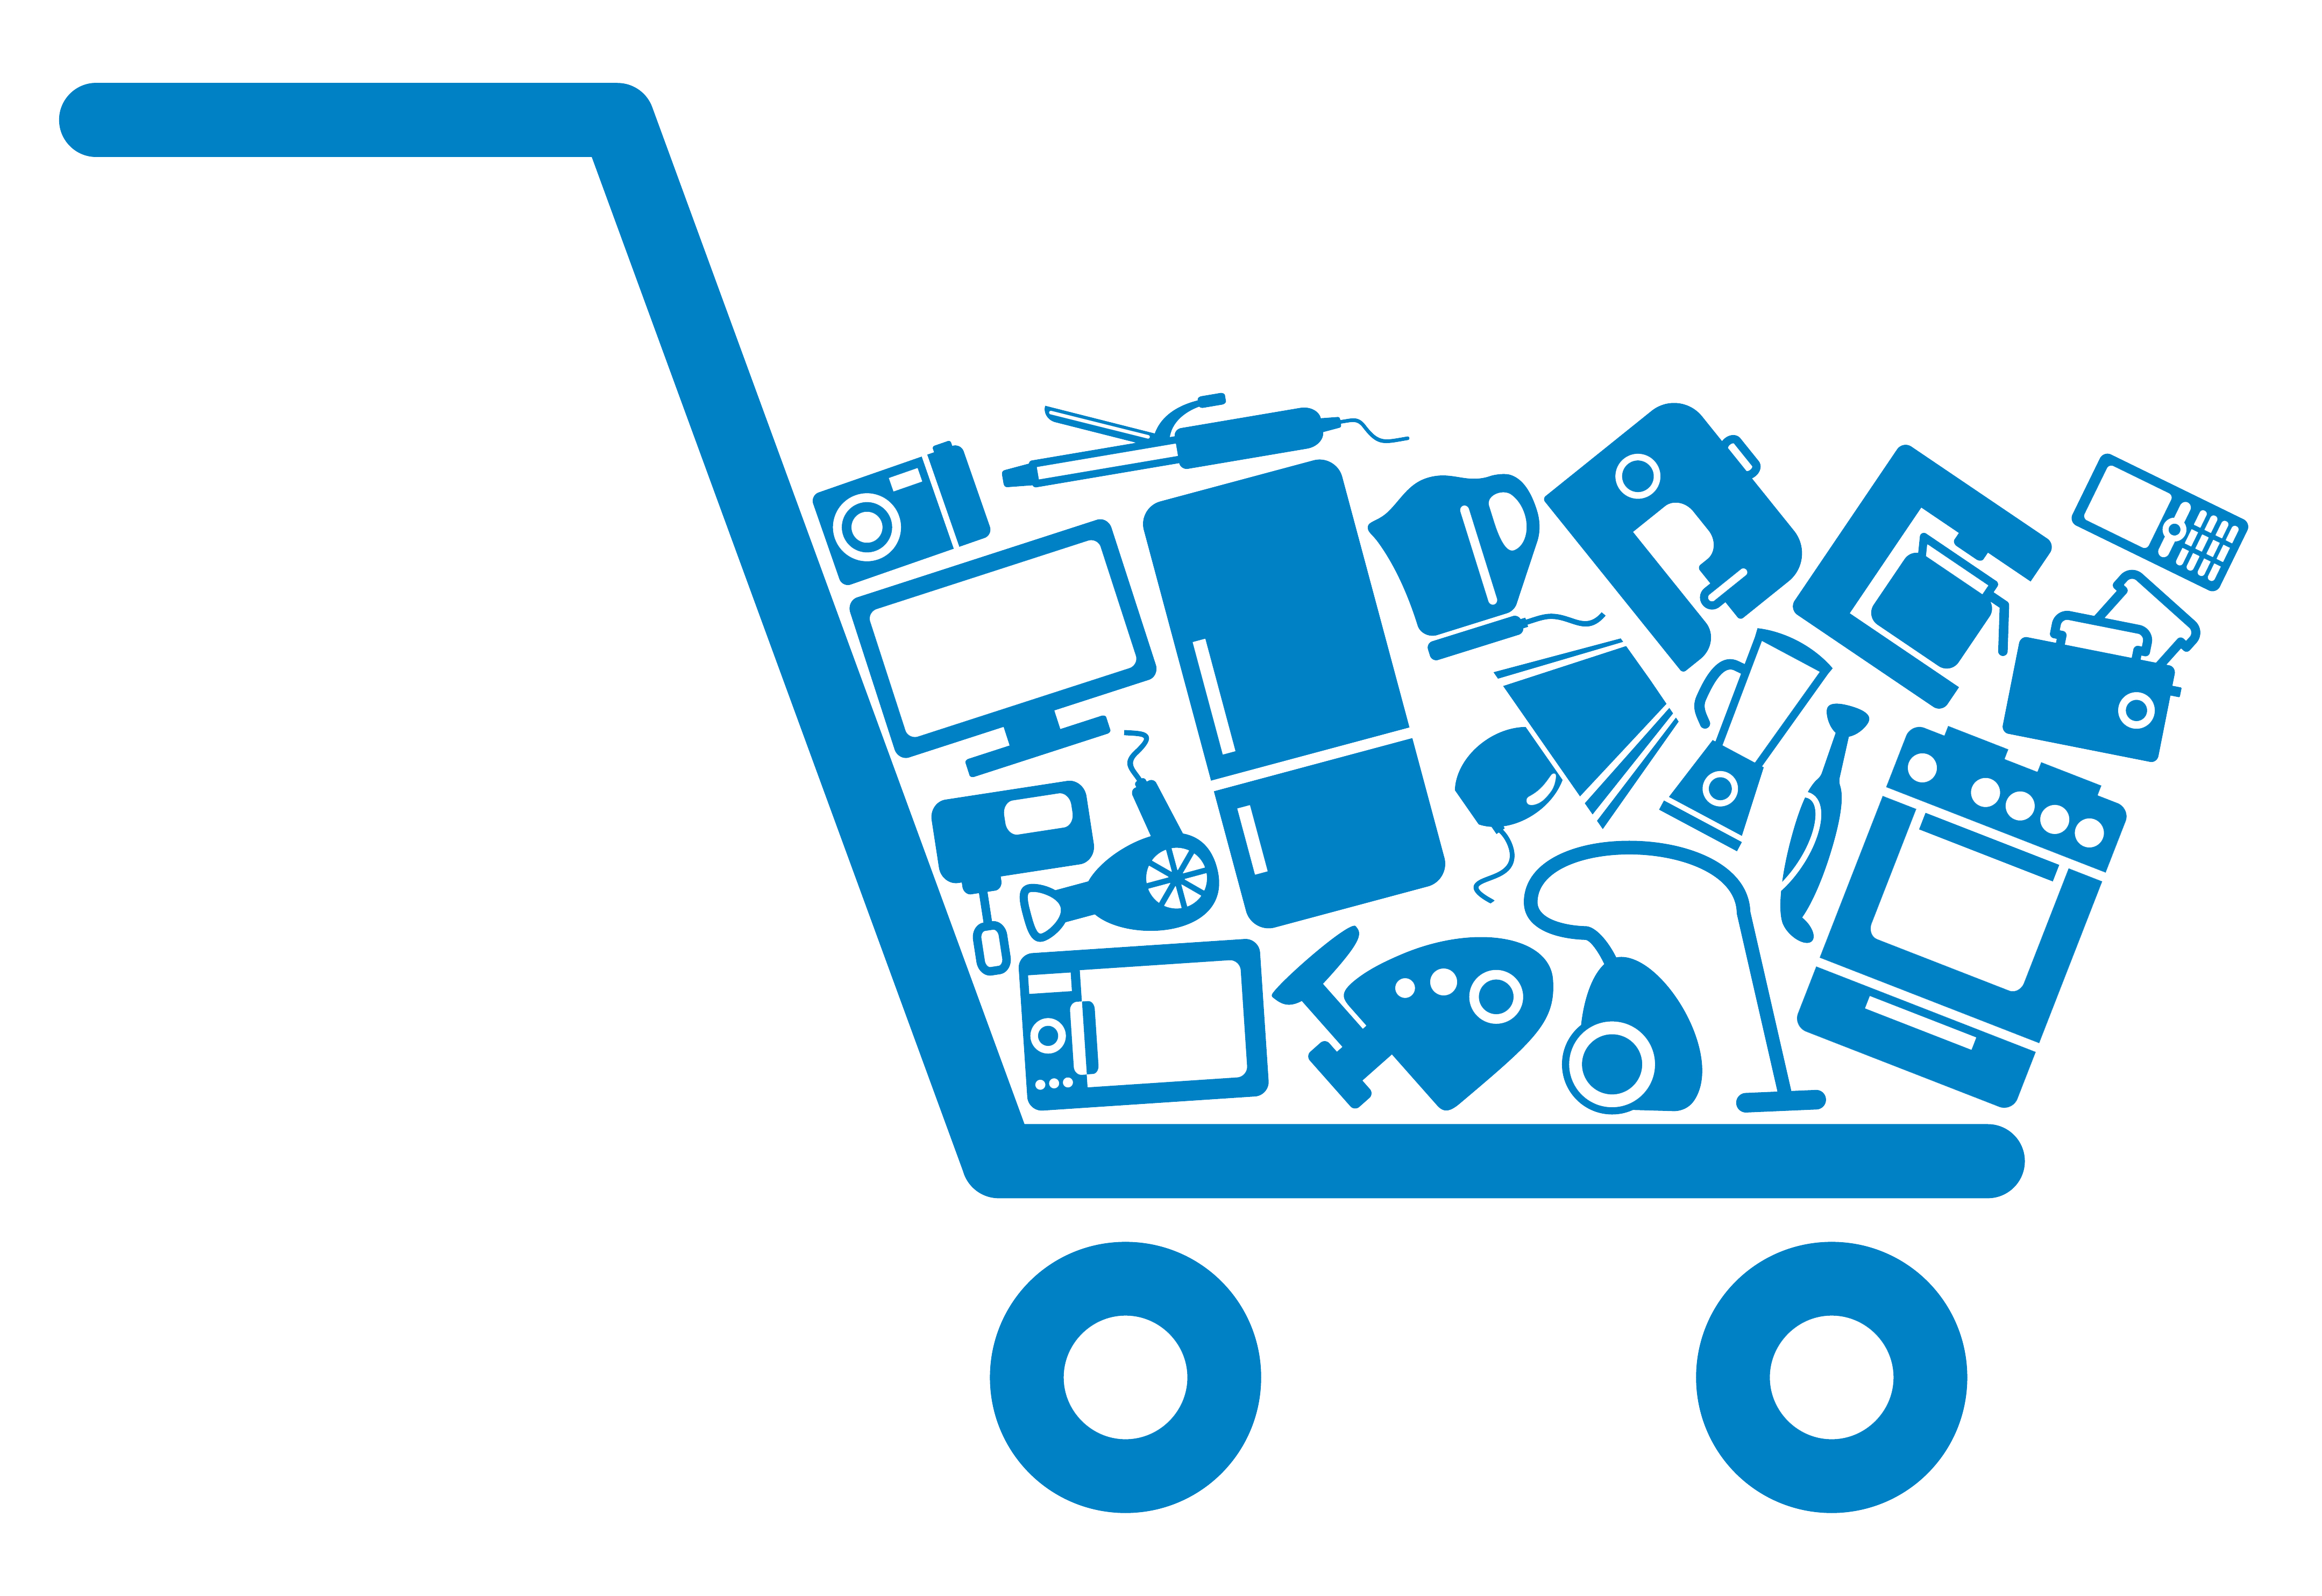 Download Shopping Online Free Clipart HQ HQ PNG Image.